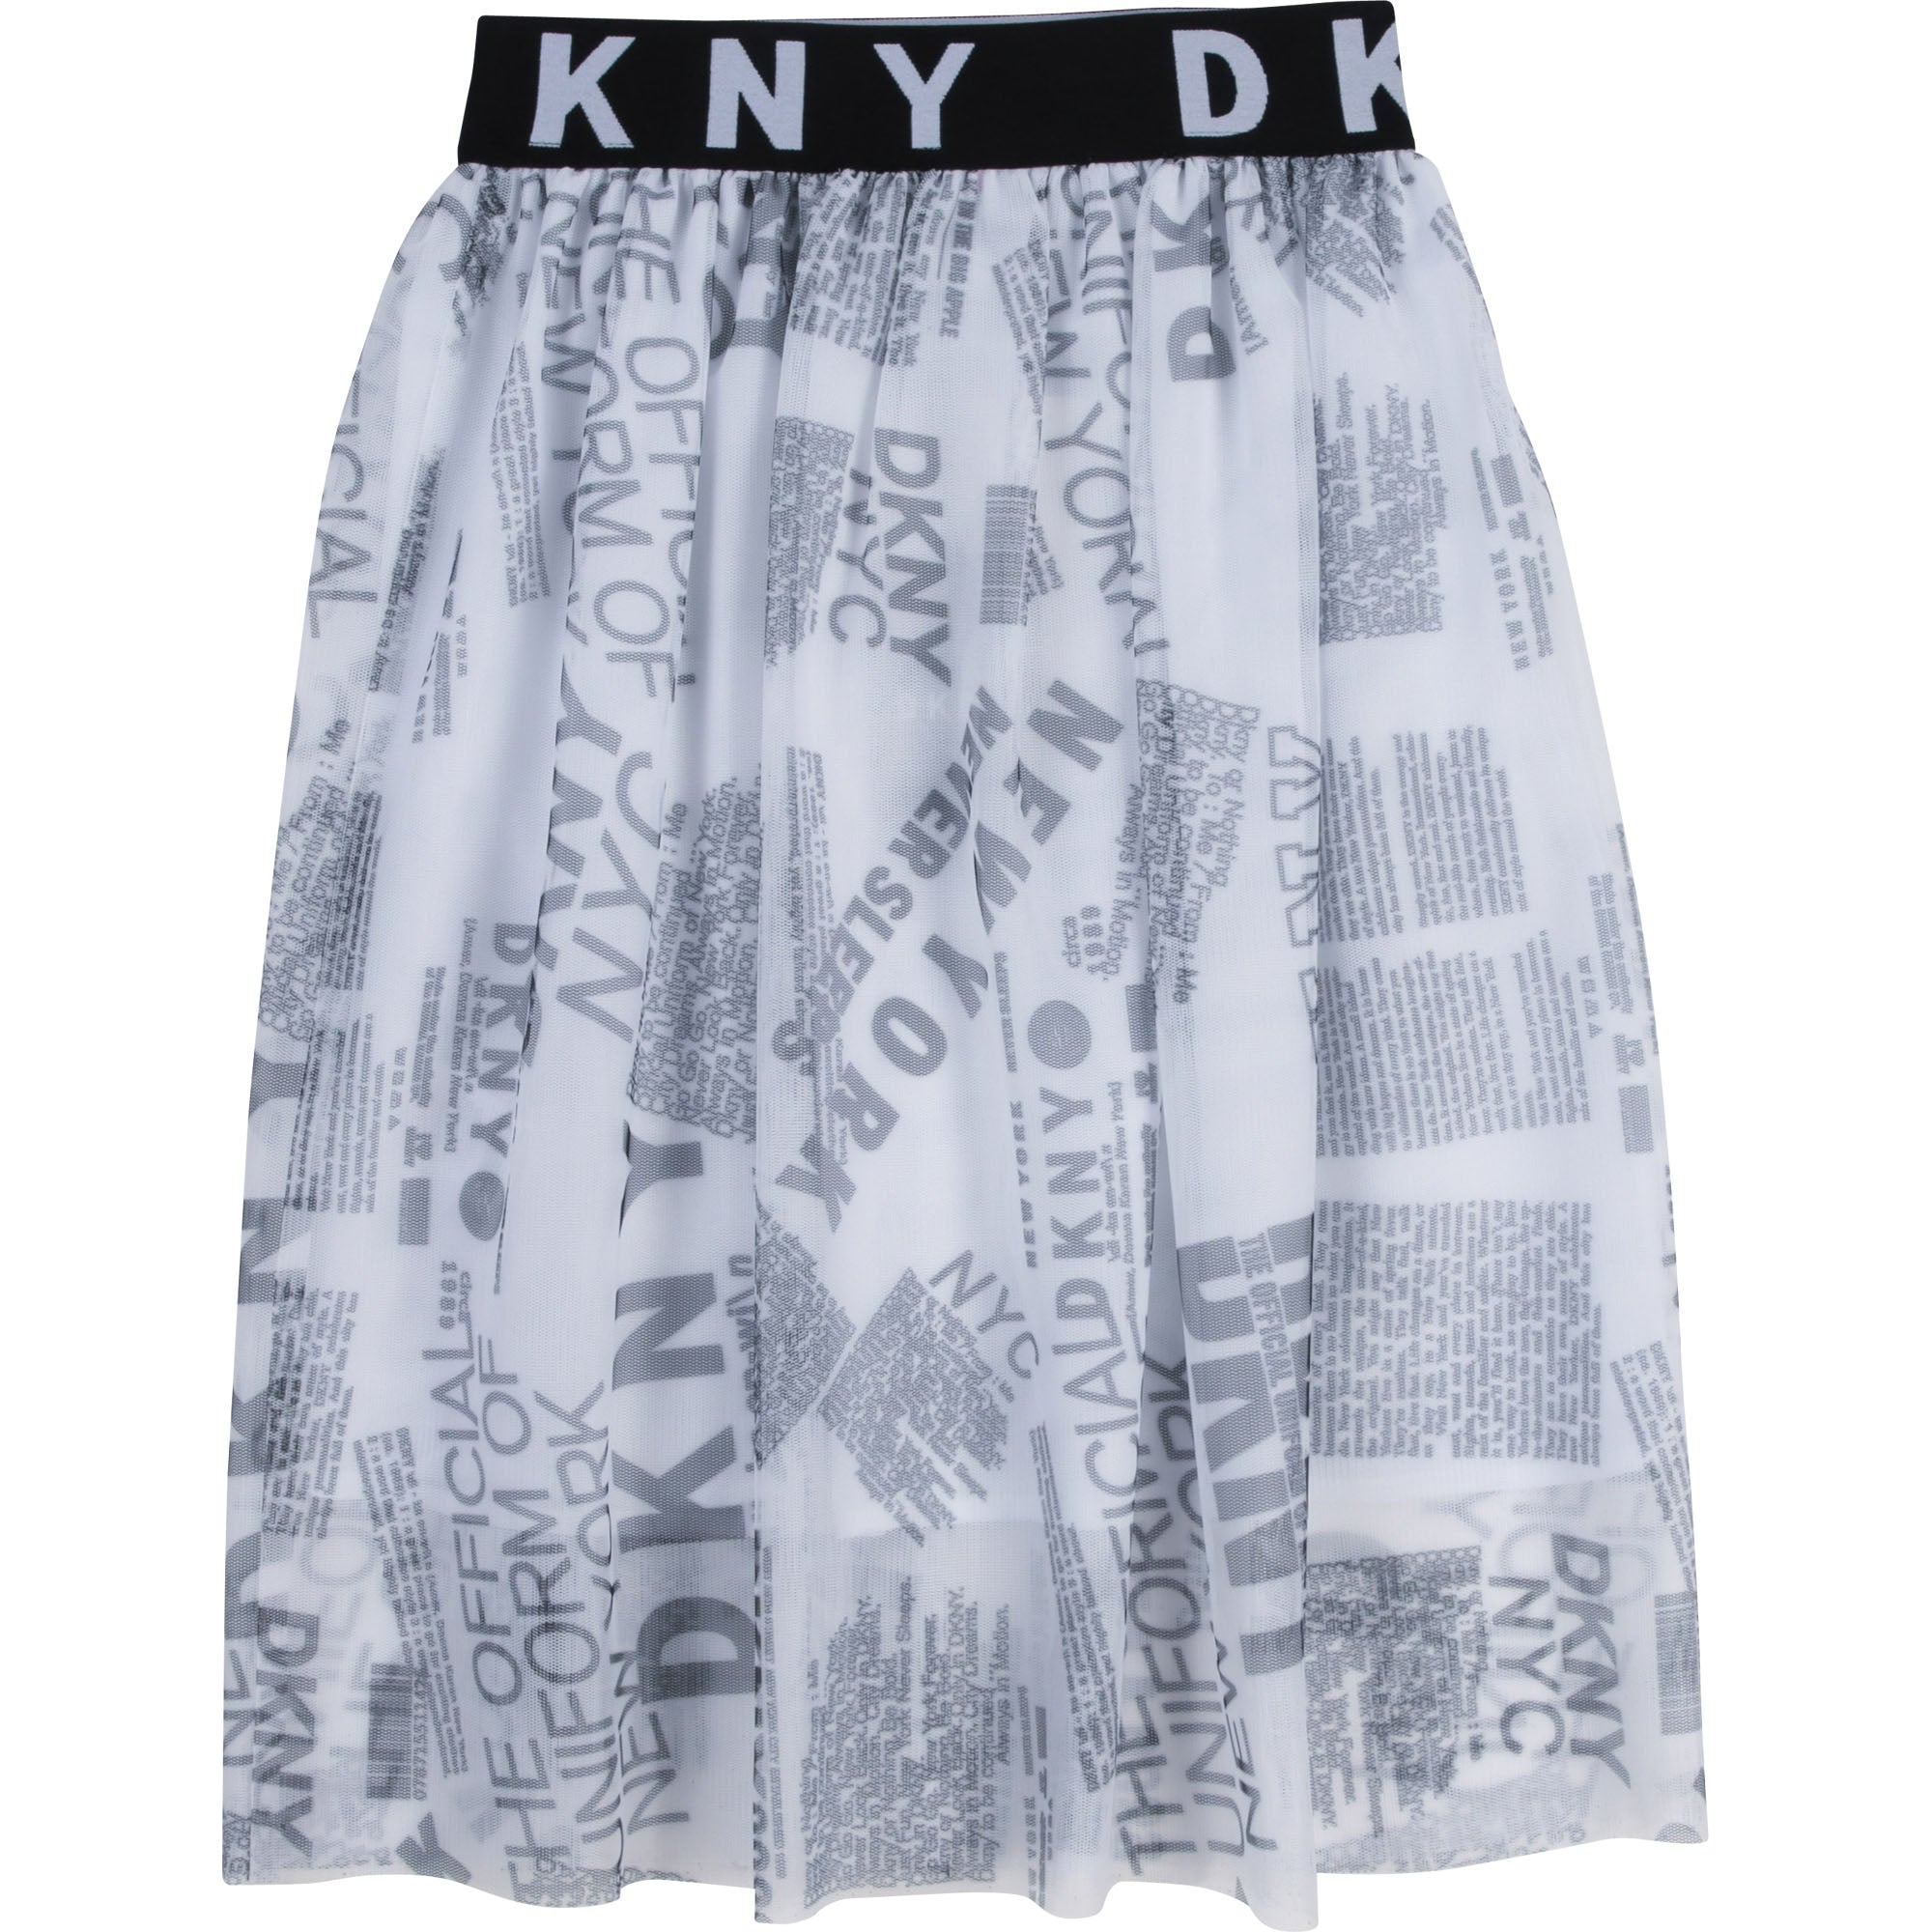 Dkny black AND WHITE logo tulle SKIRT